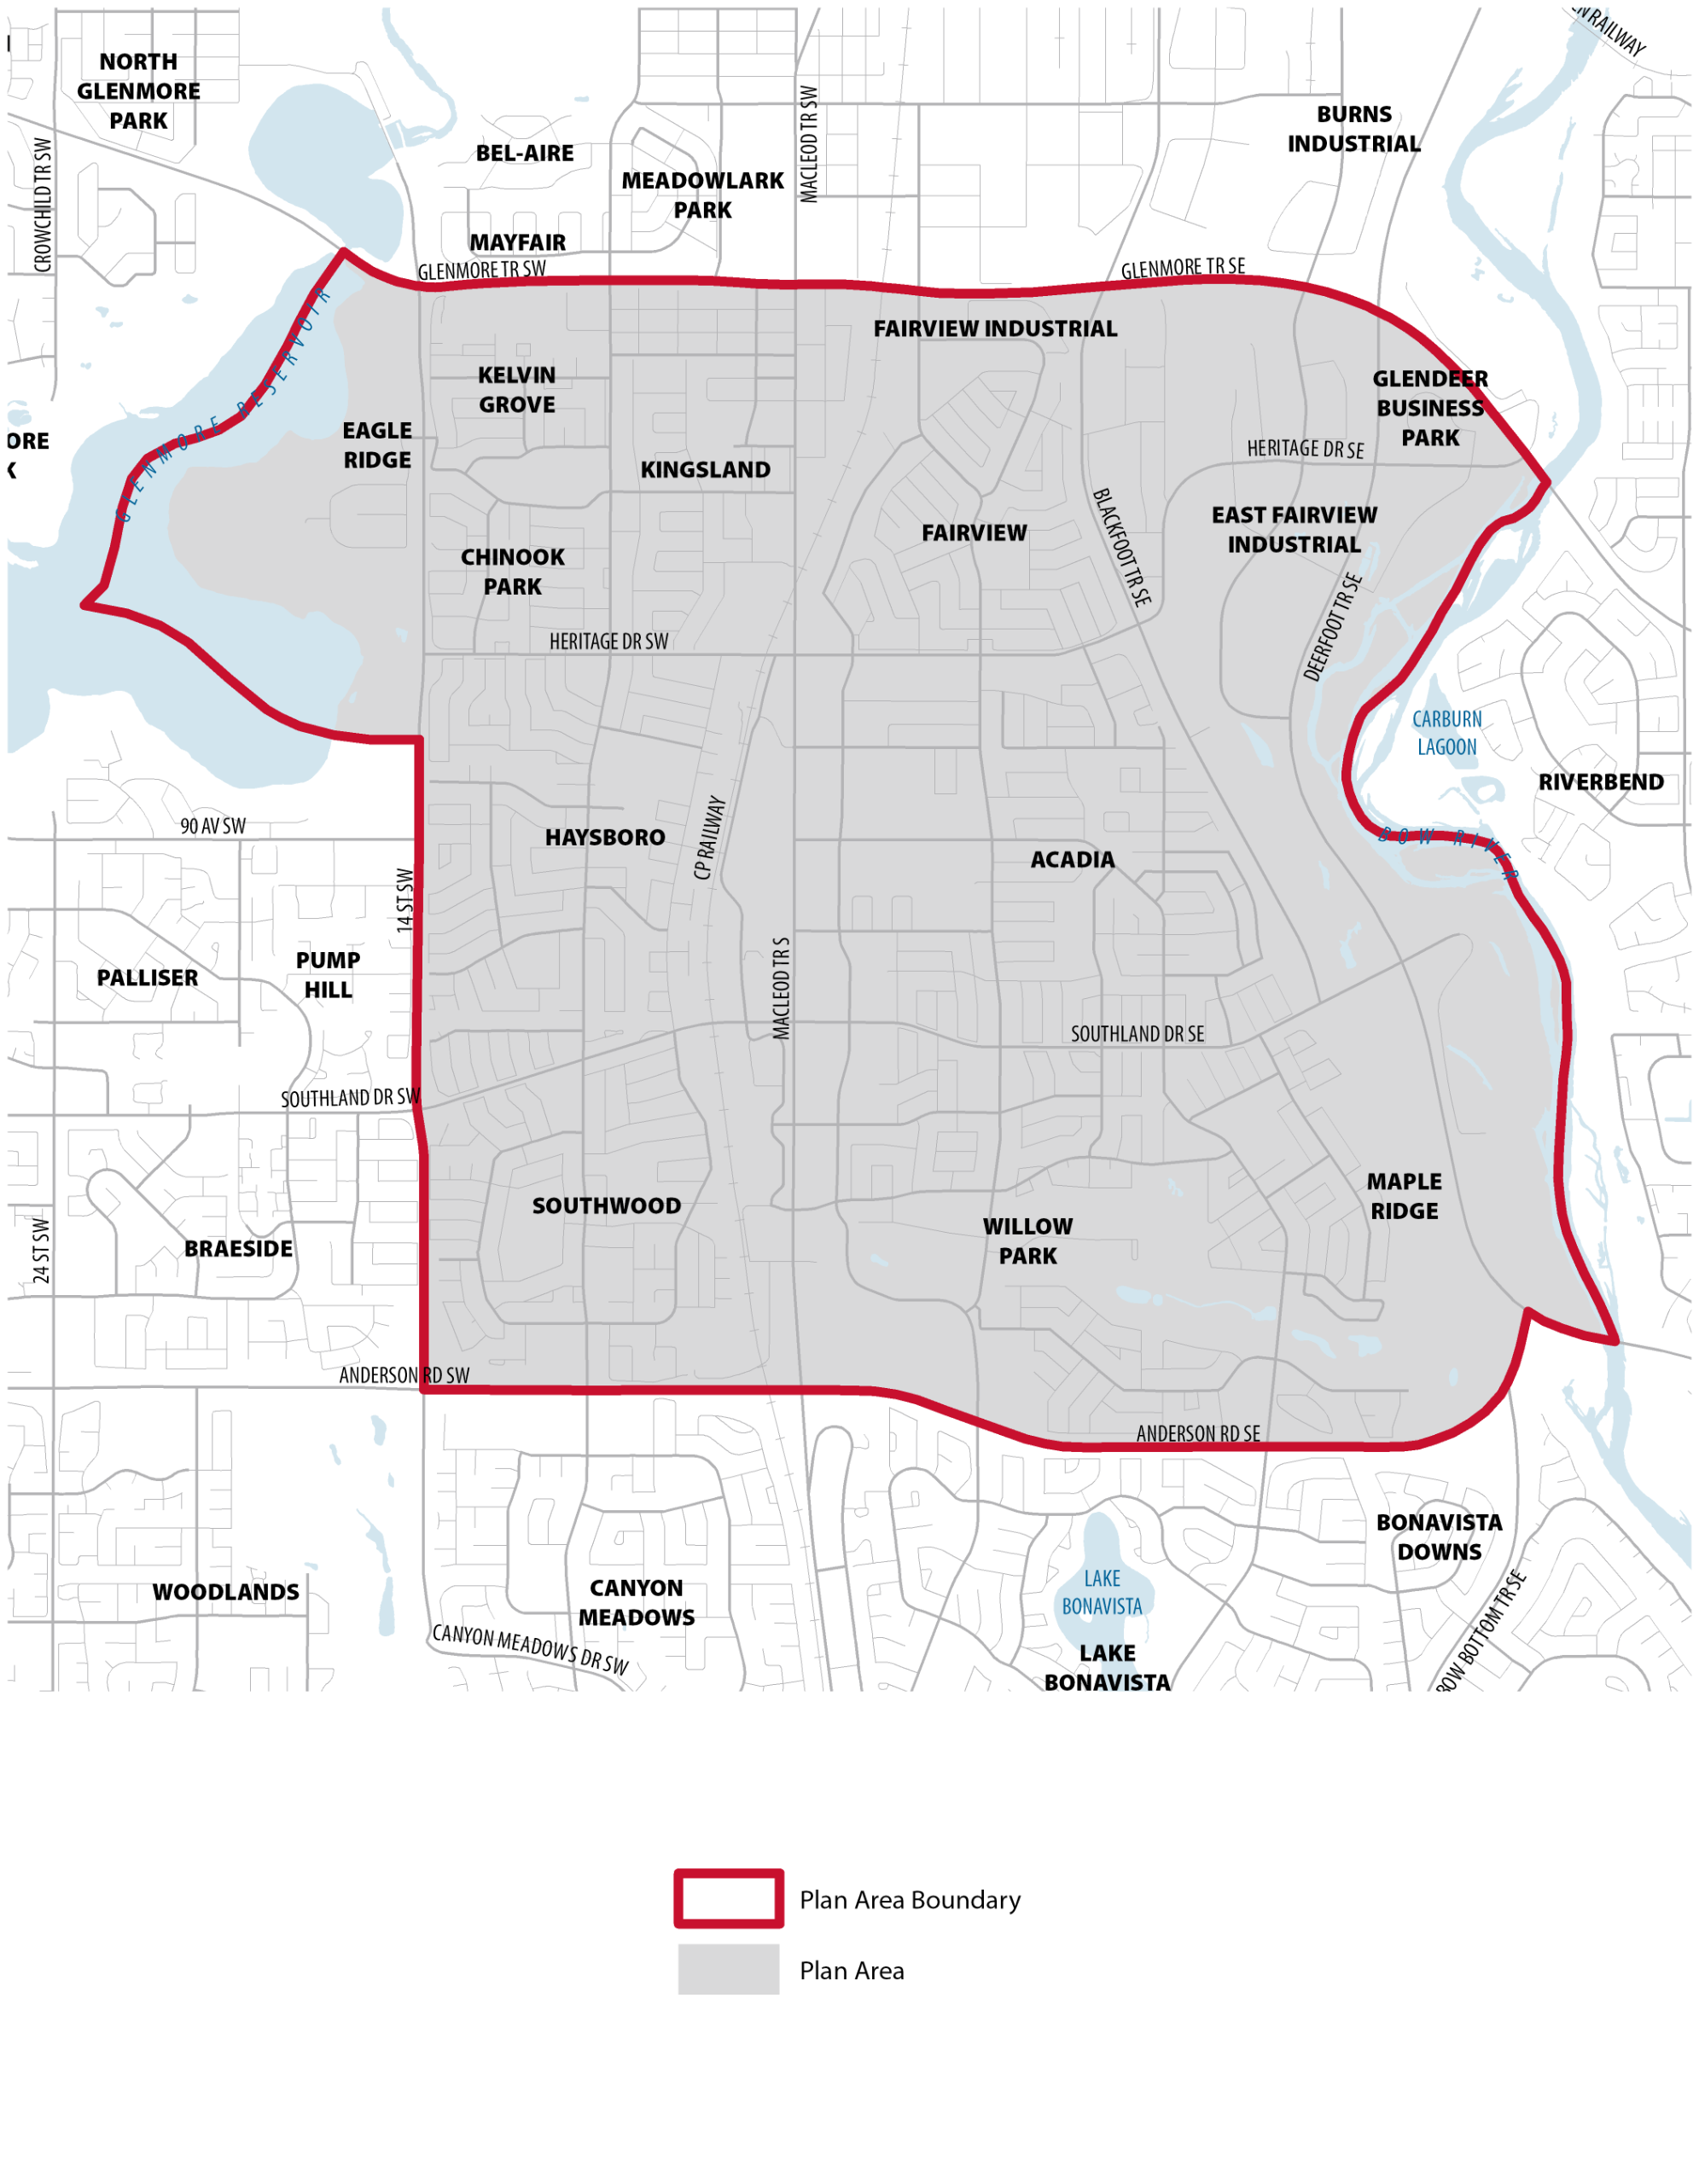 Ward 11 Boundary Map